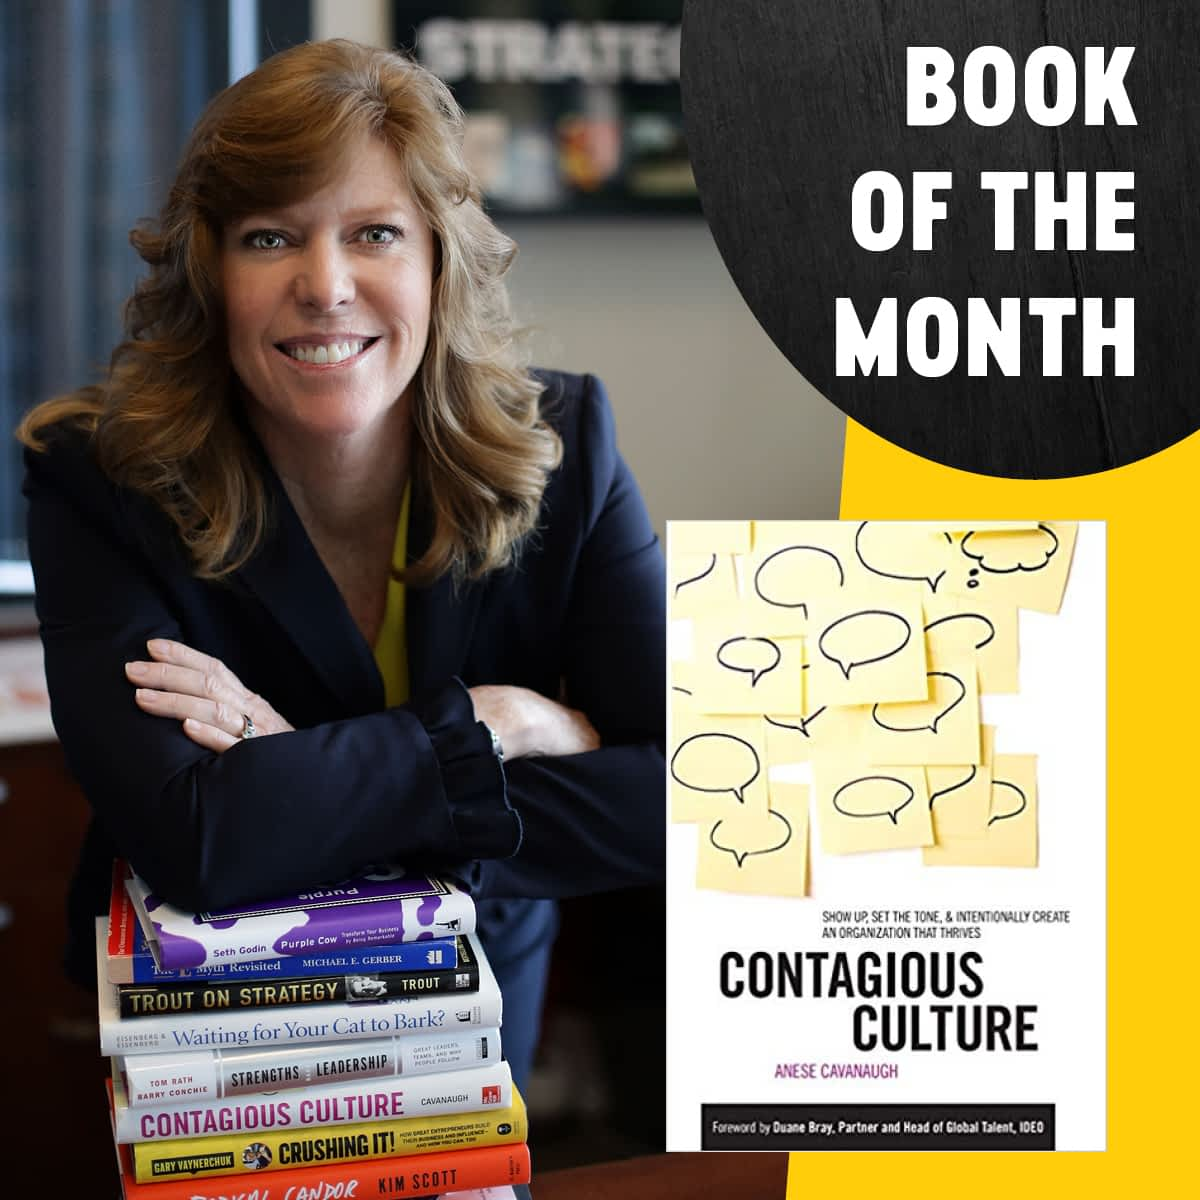 KC Book Of The Month 7 - Contagious Culture